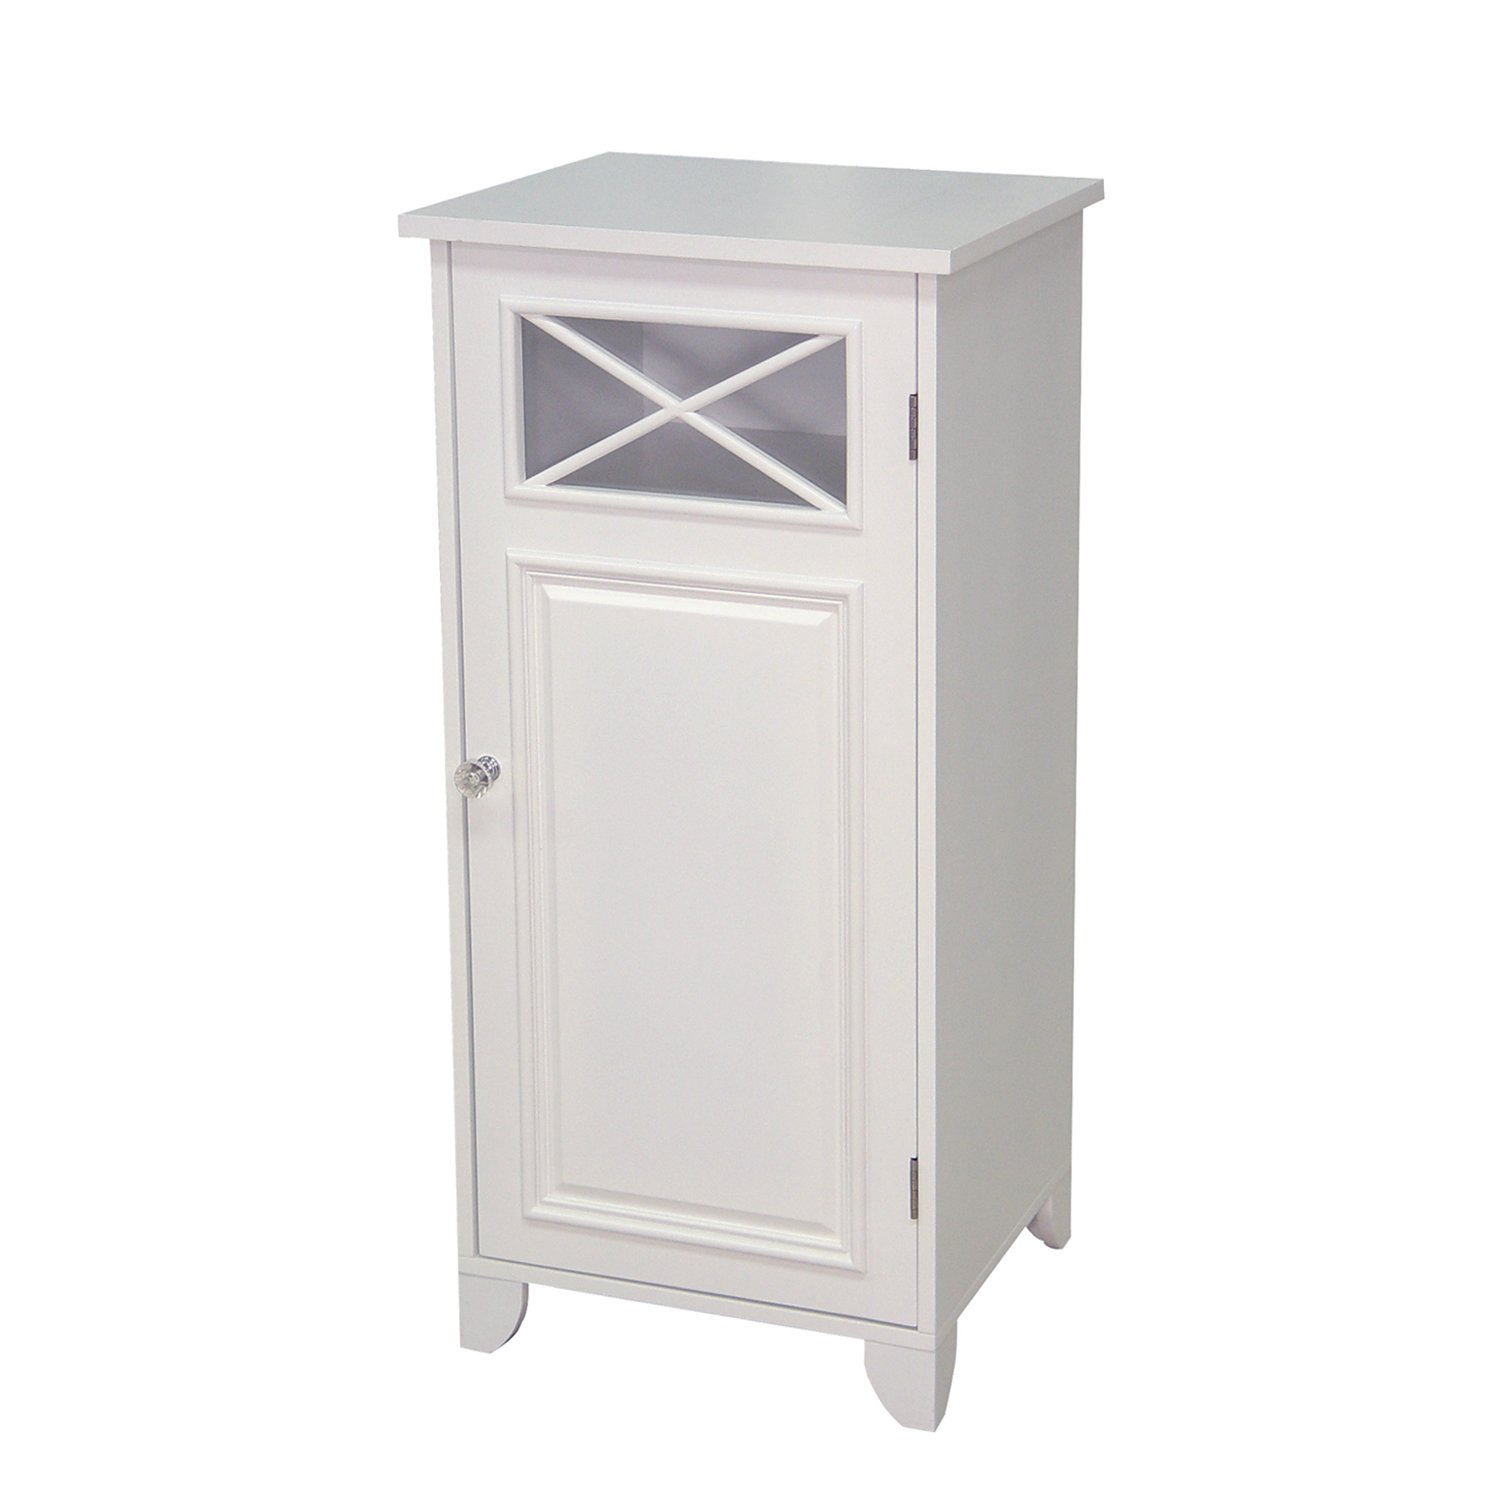 Amazon.com Elegant Home Fashions Dawson Floor Cabinet With Single Door White Kitchen u0026 Dining  sc 1 st  Amazon.com & Amazon.com: Elegant Home Fashions Dawson Floor Cabinet With Single ...